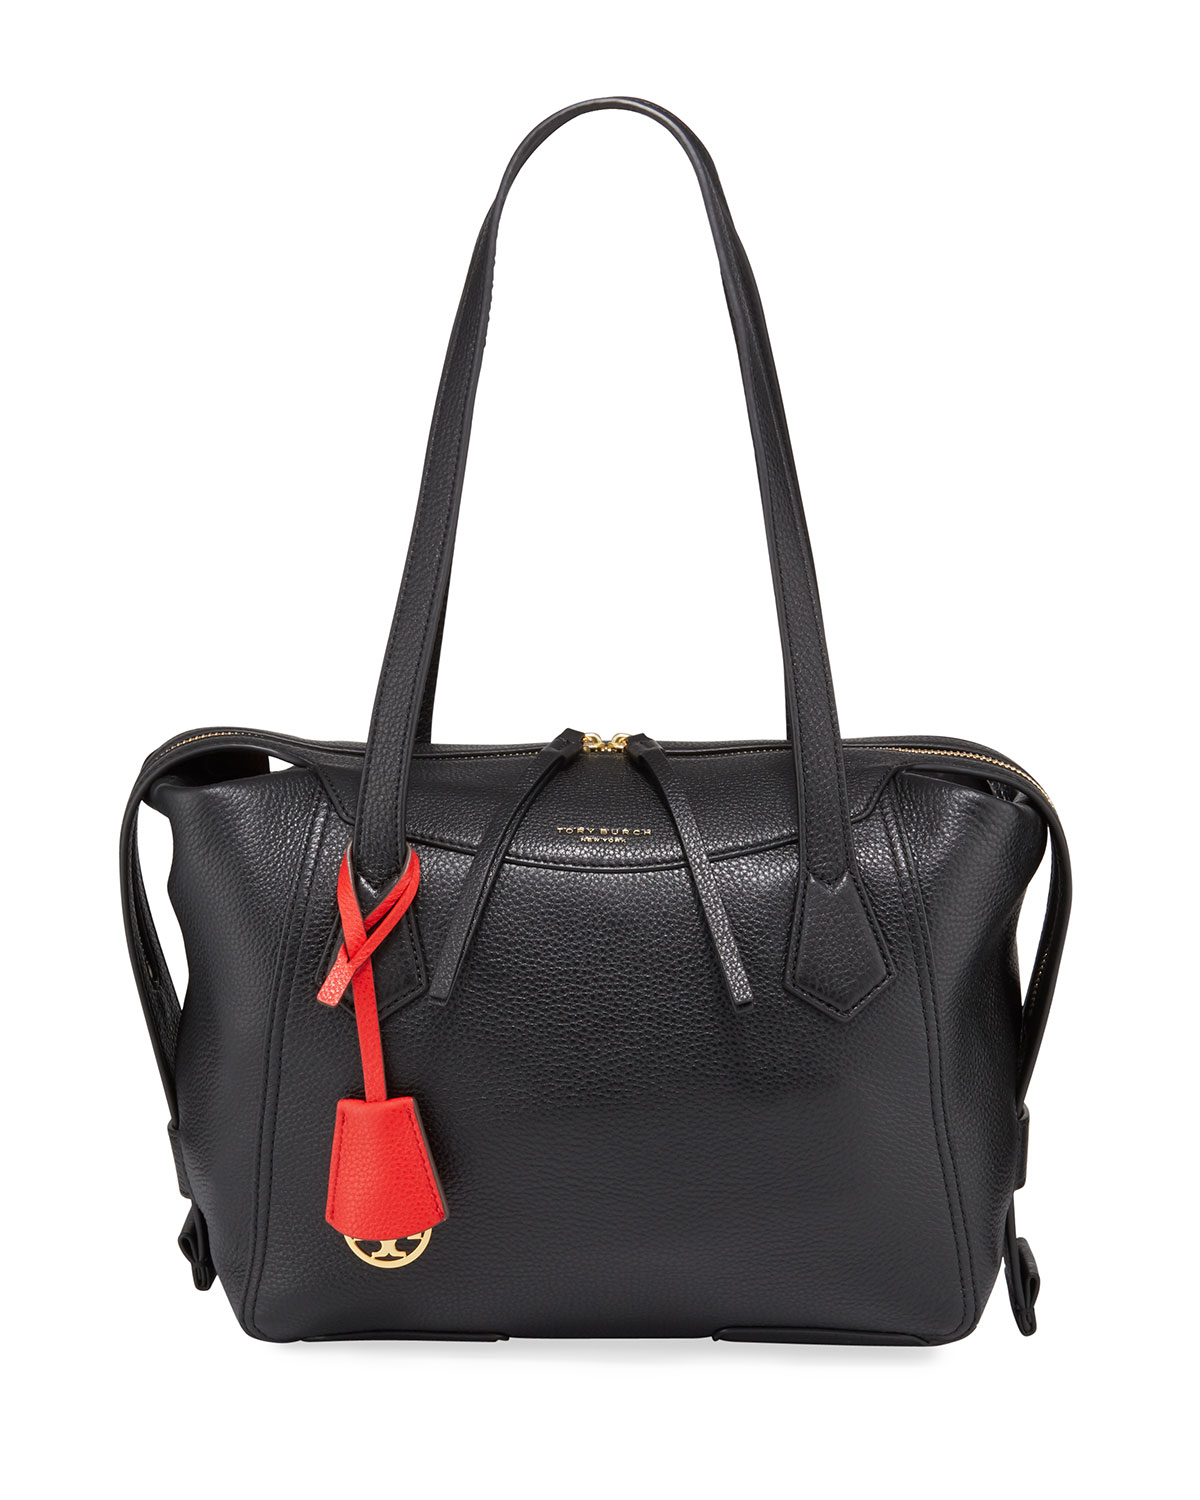 Tory Burch Bags Perry Leather Satchel Bag